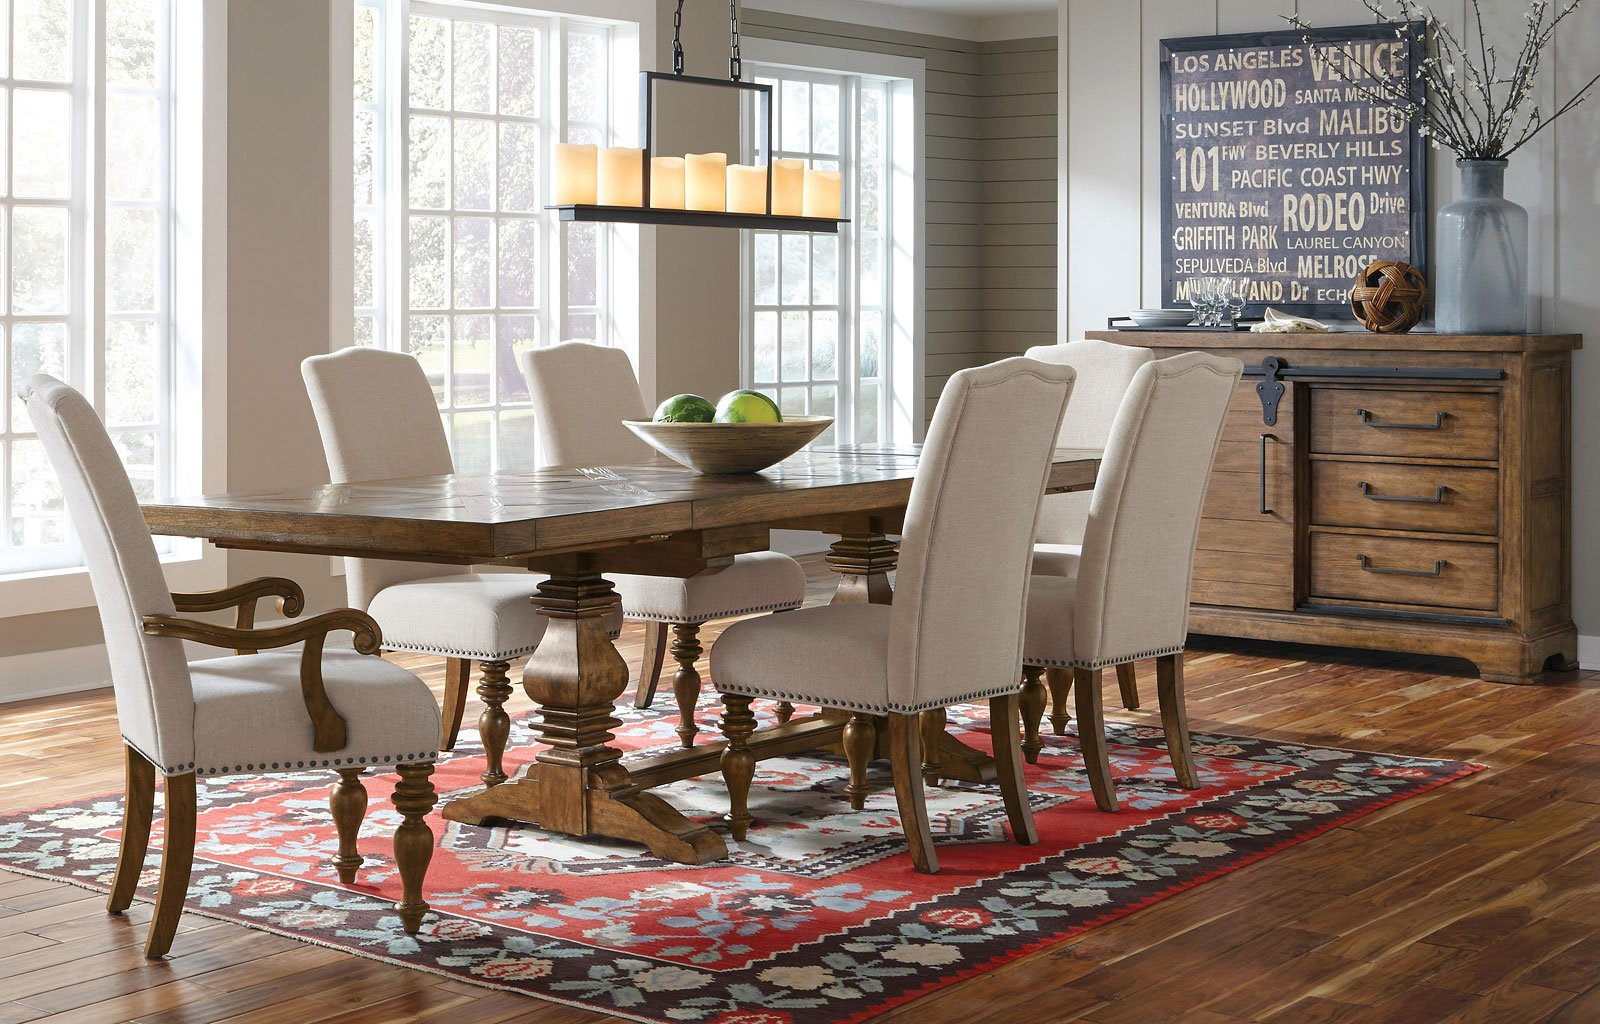 american attitude  pattern dining room set  upholstered chairs  samuel lawrence furniture